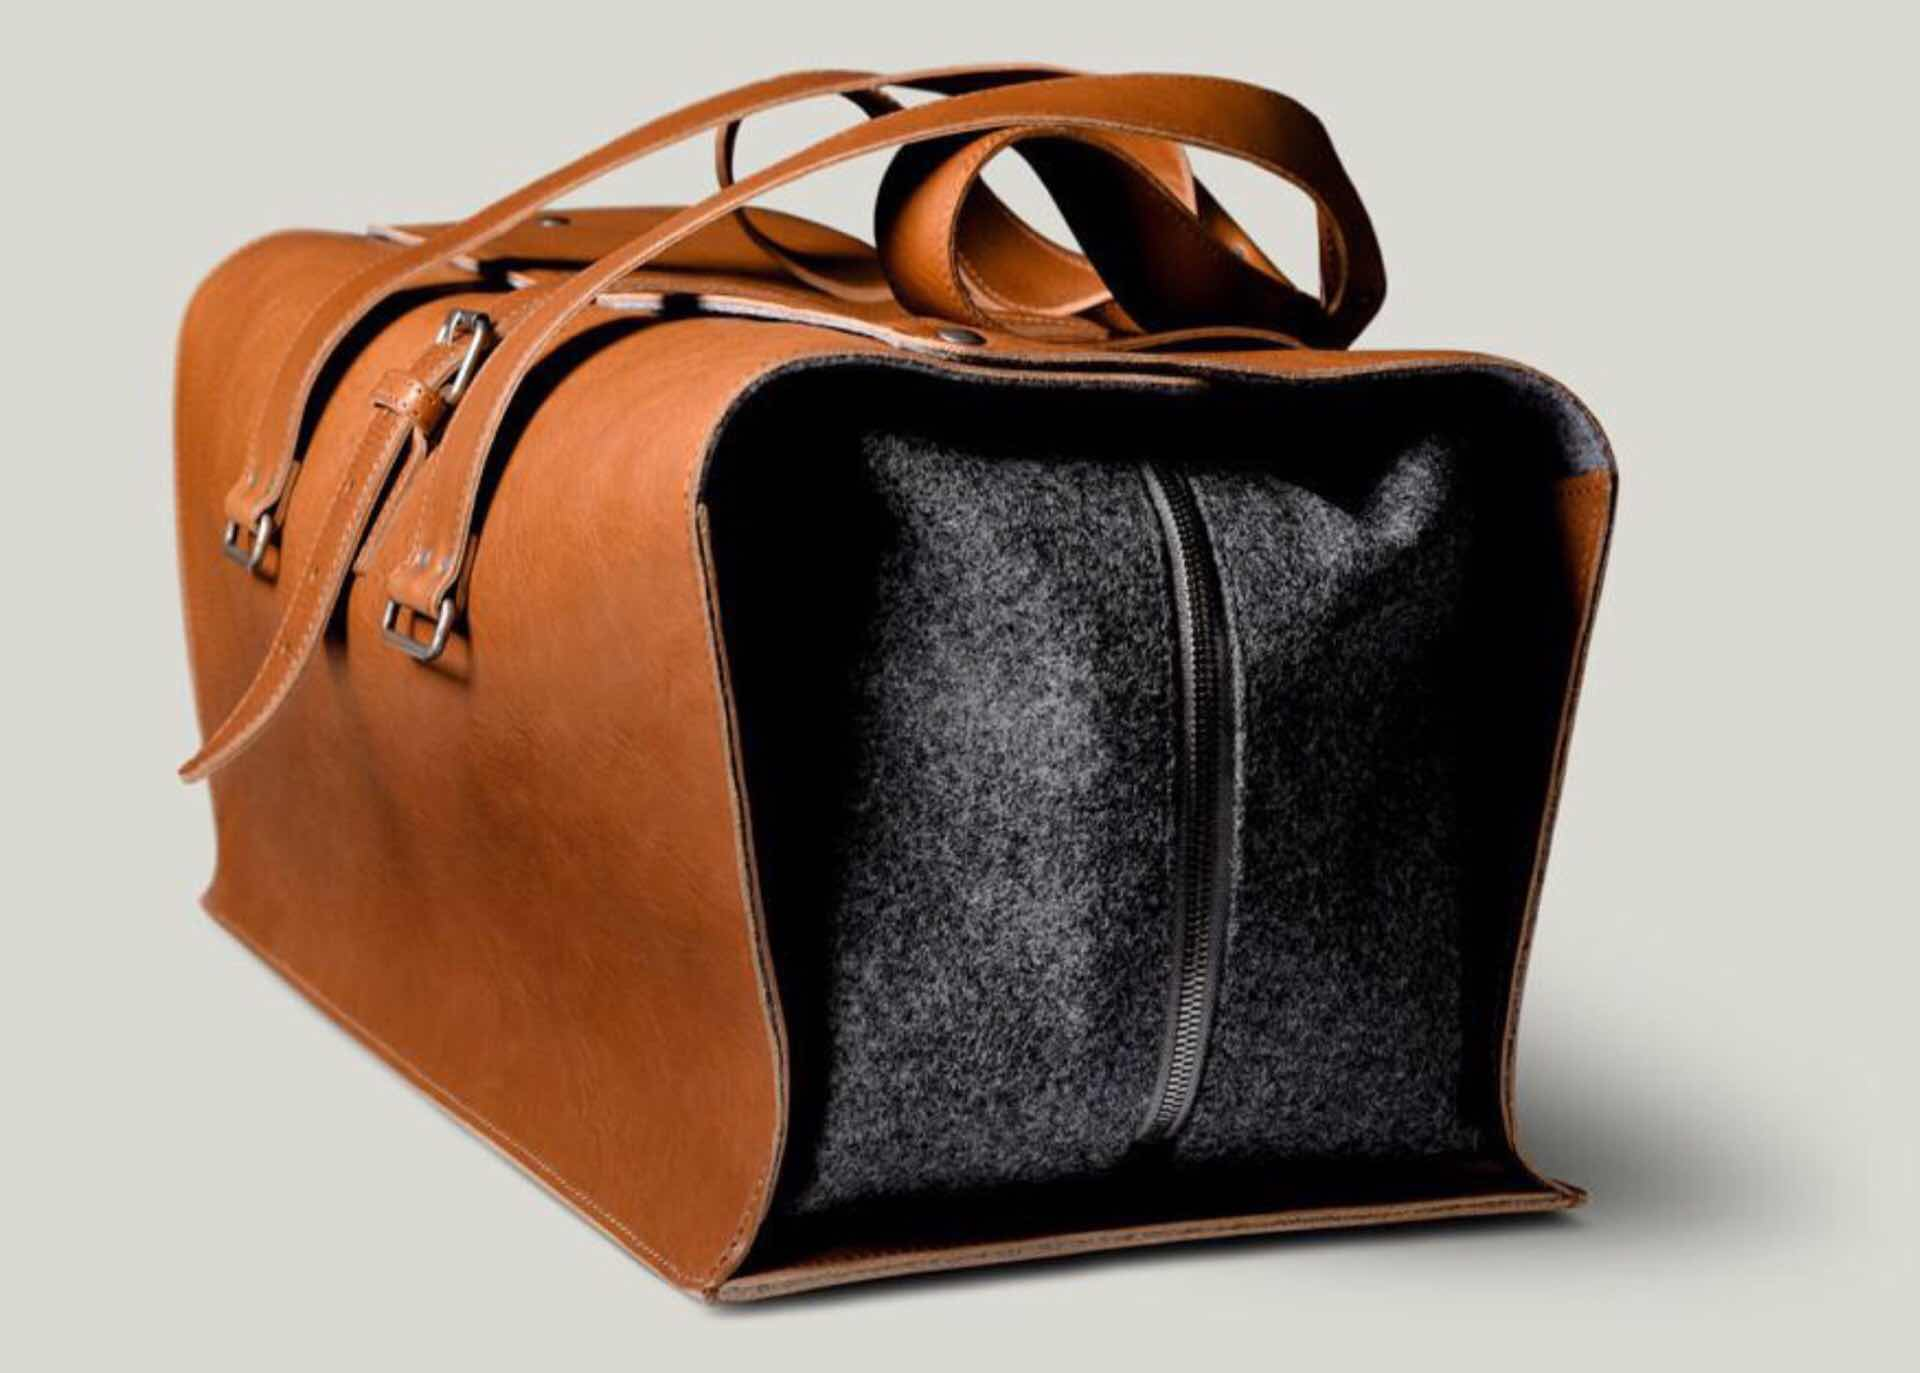 hard-graft-1st-edition-travel-bag